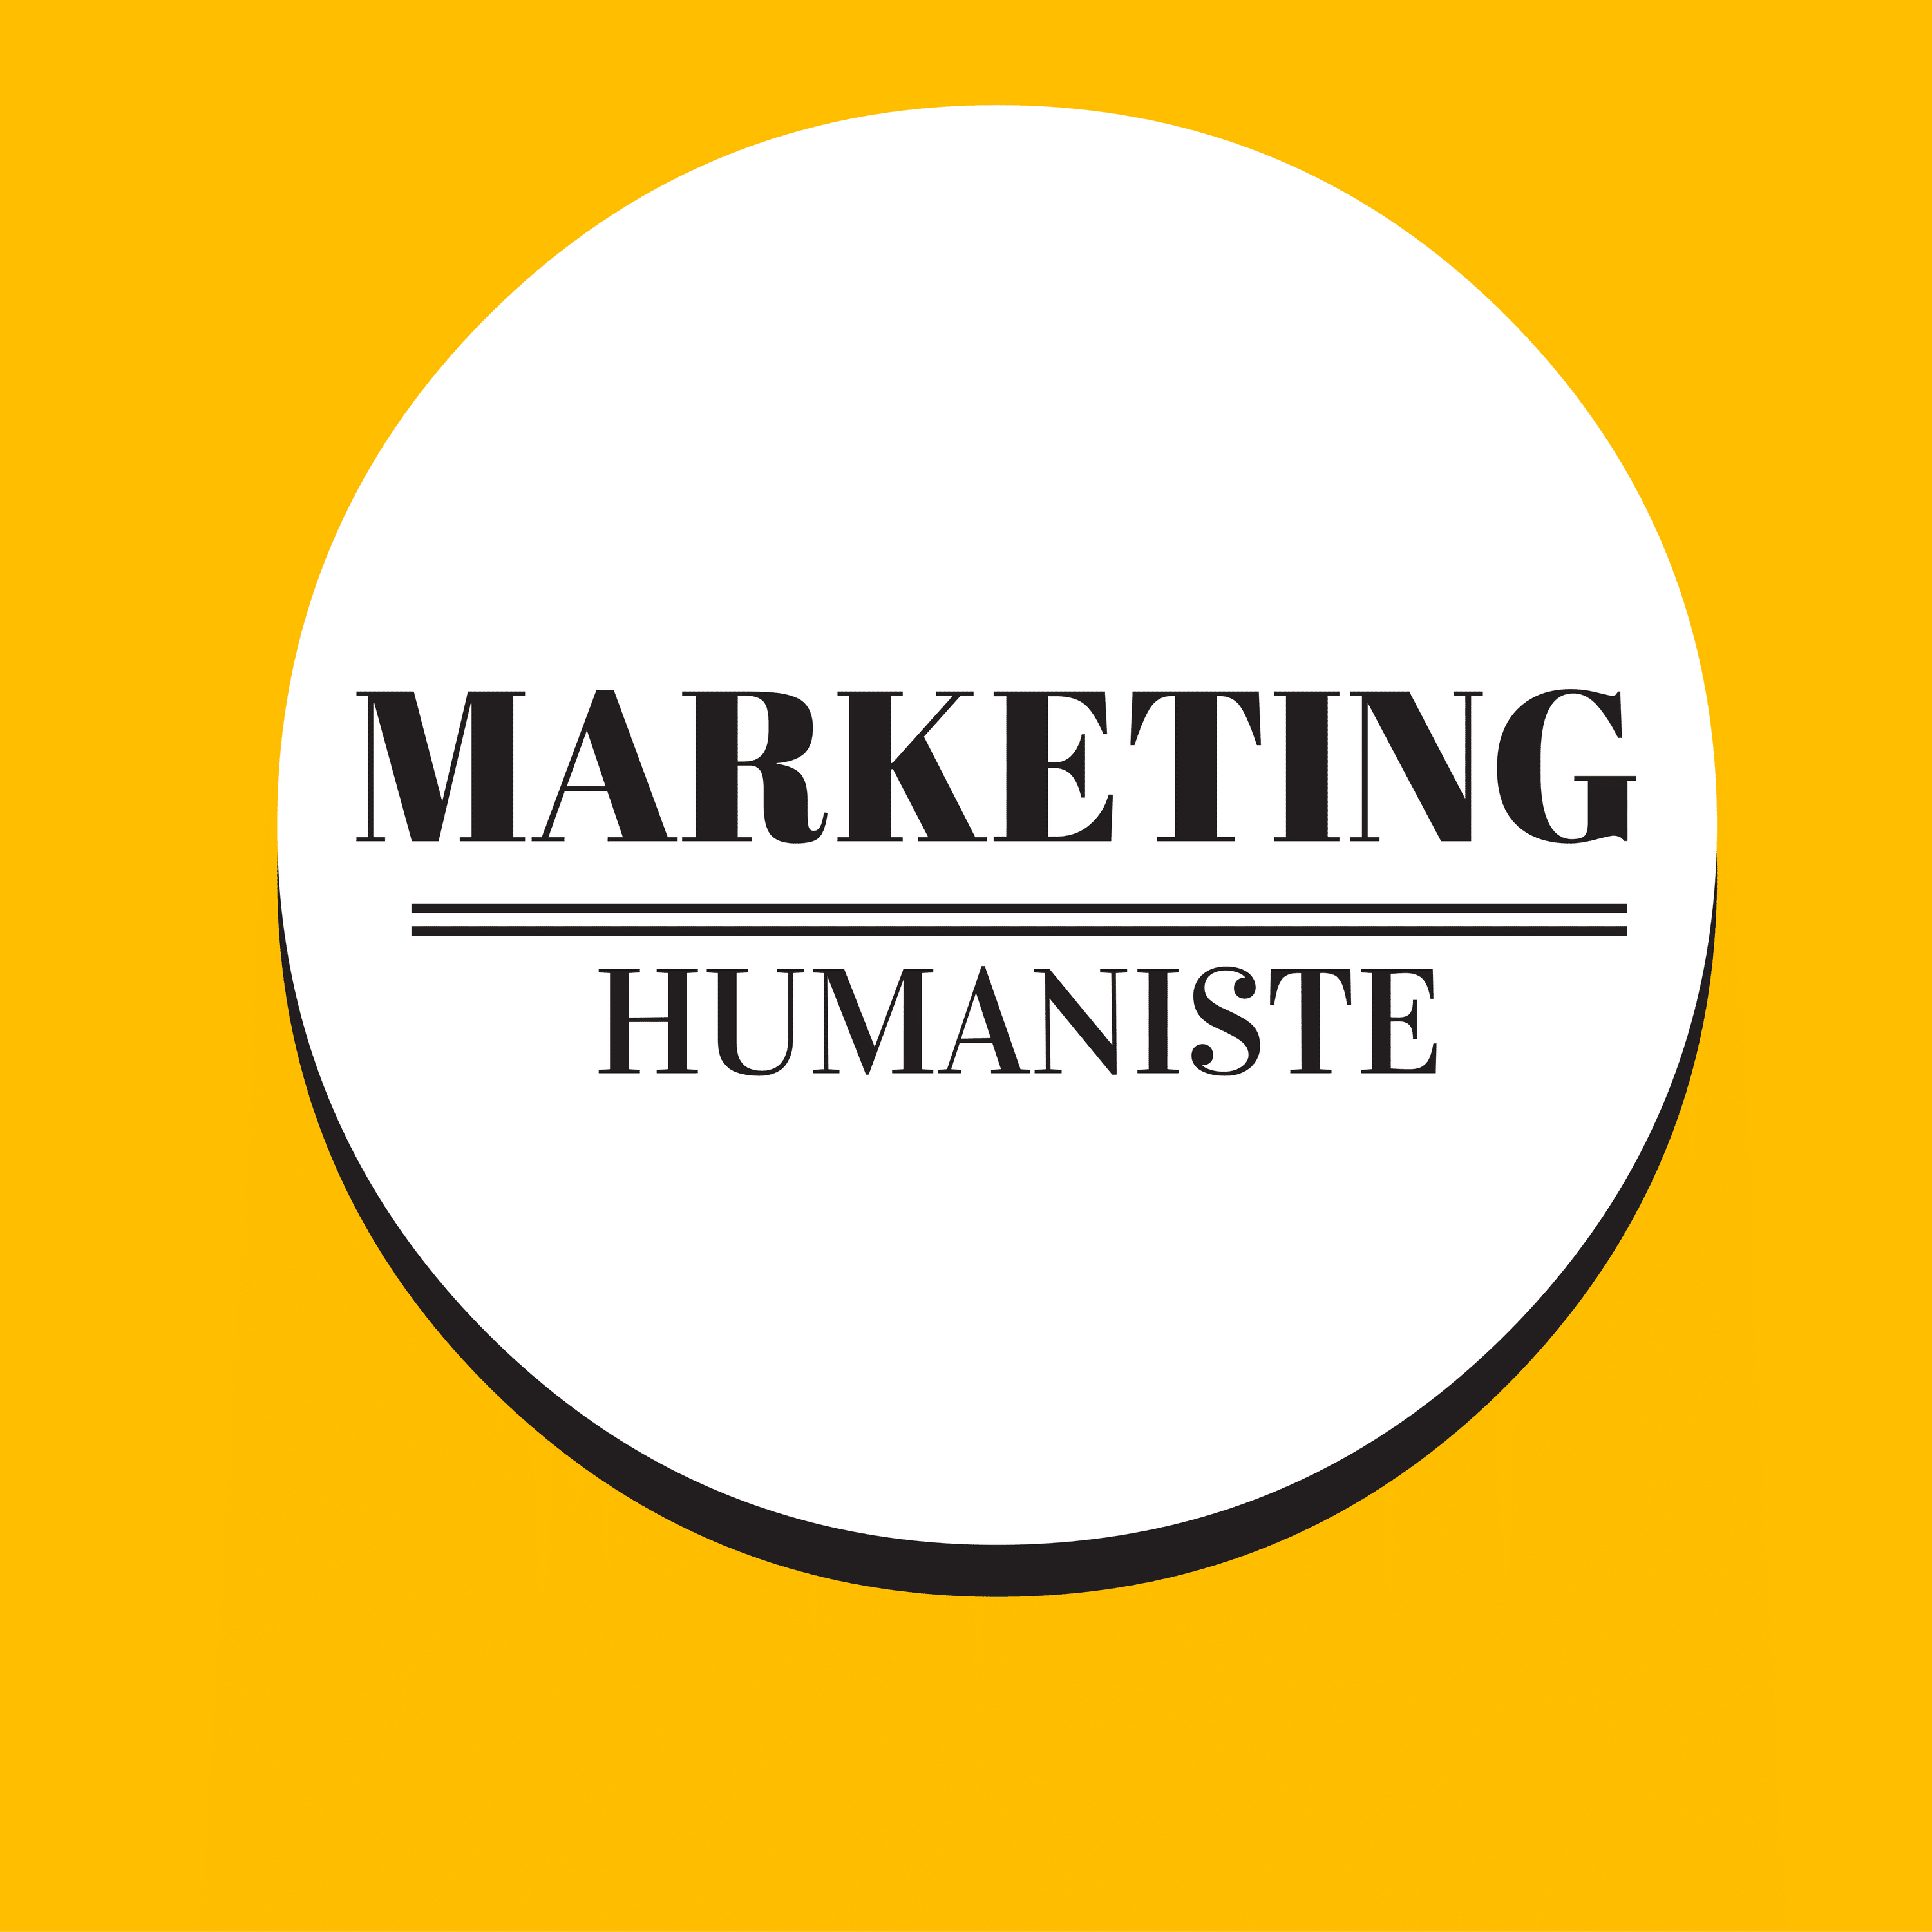 Marketing Humaniste – Le marketing humain et respectueux de tous